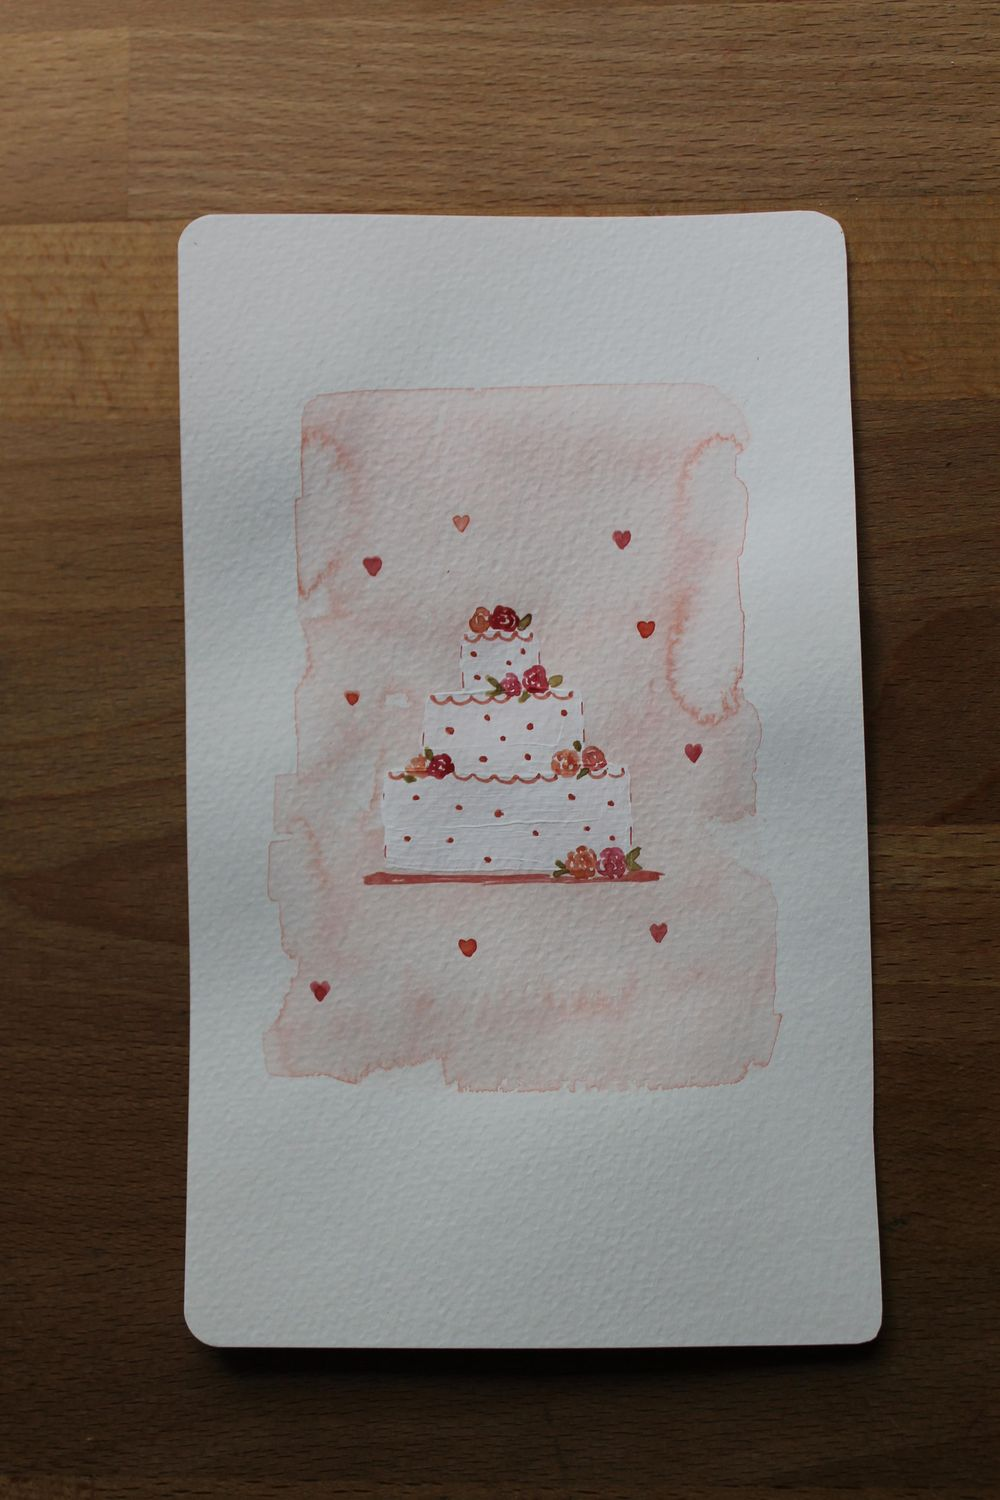 Yummy Cakes - image 5 - student project